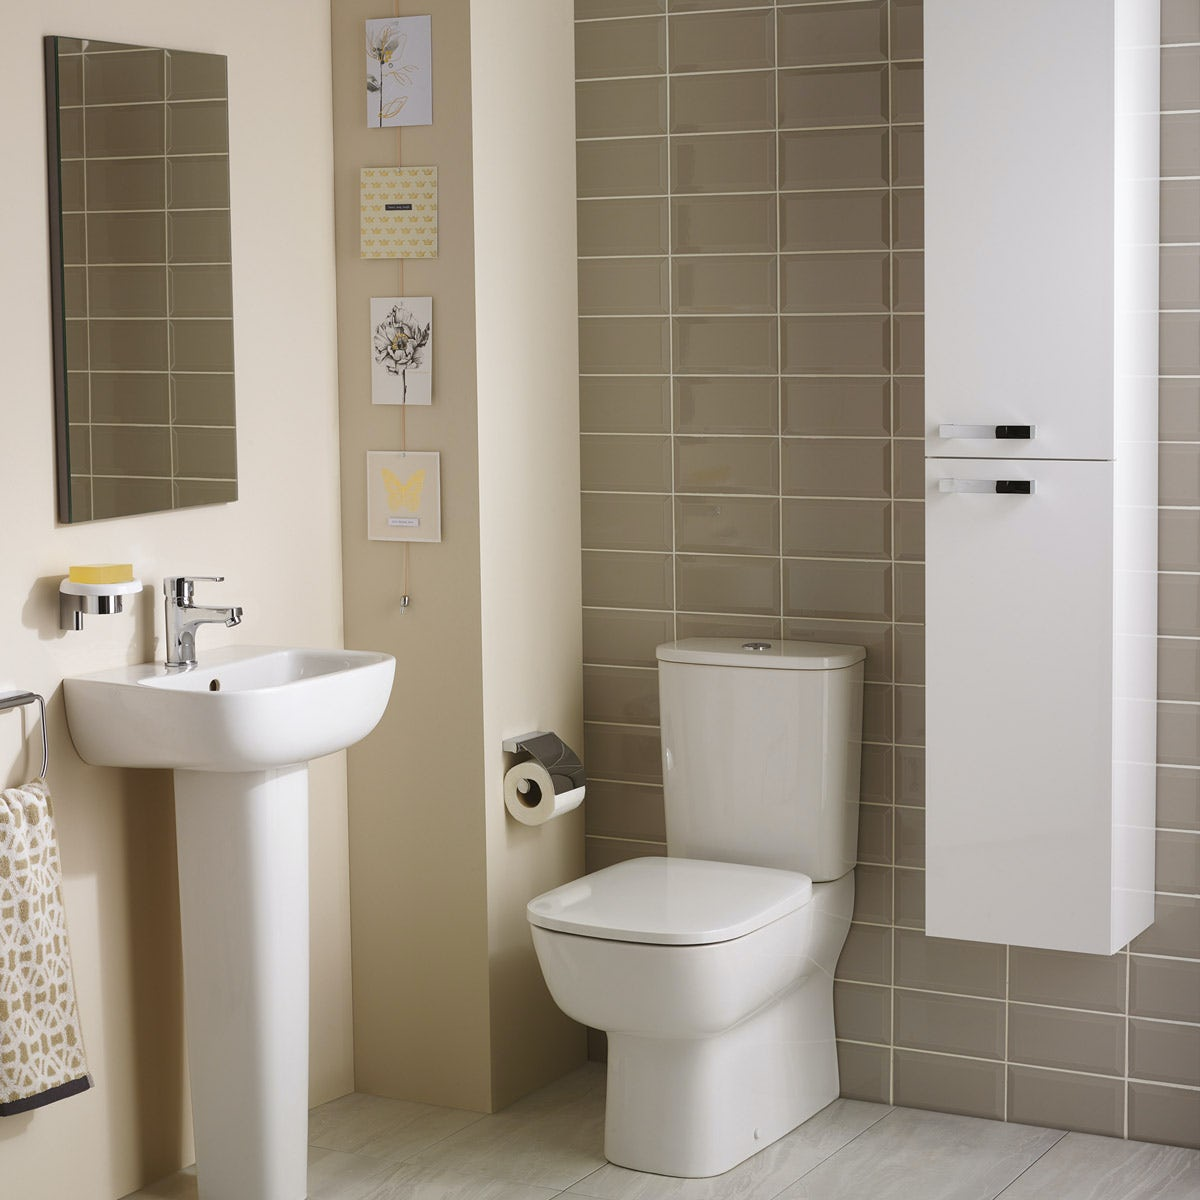 Ideal Standard Studio Echo cloakroom suite with close coupled toilet and full pedestal basin 450mm